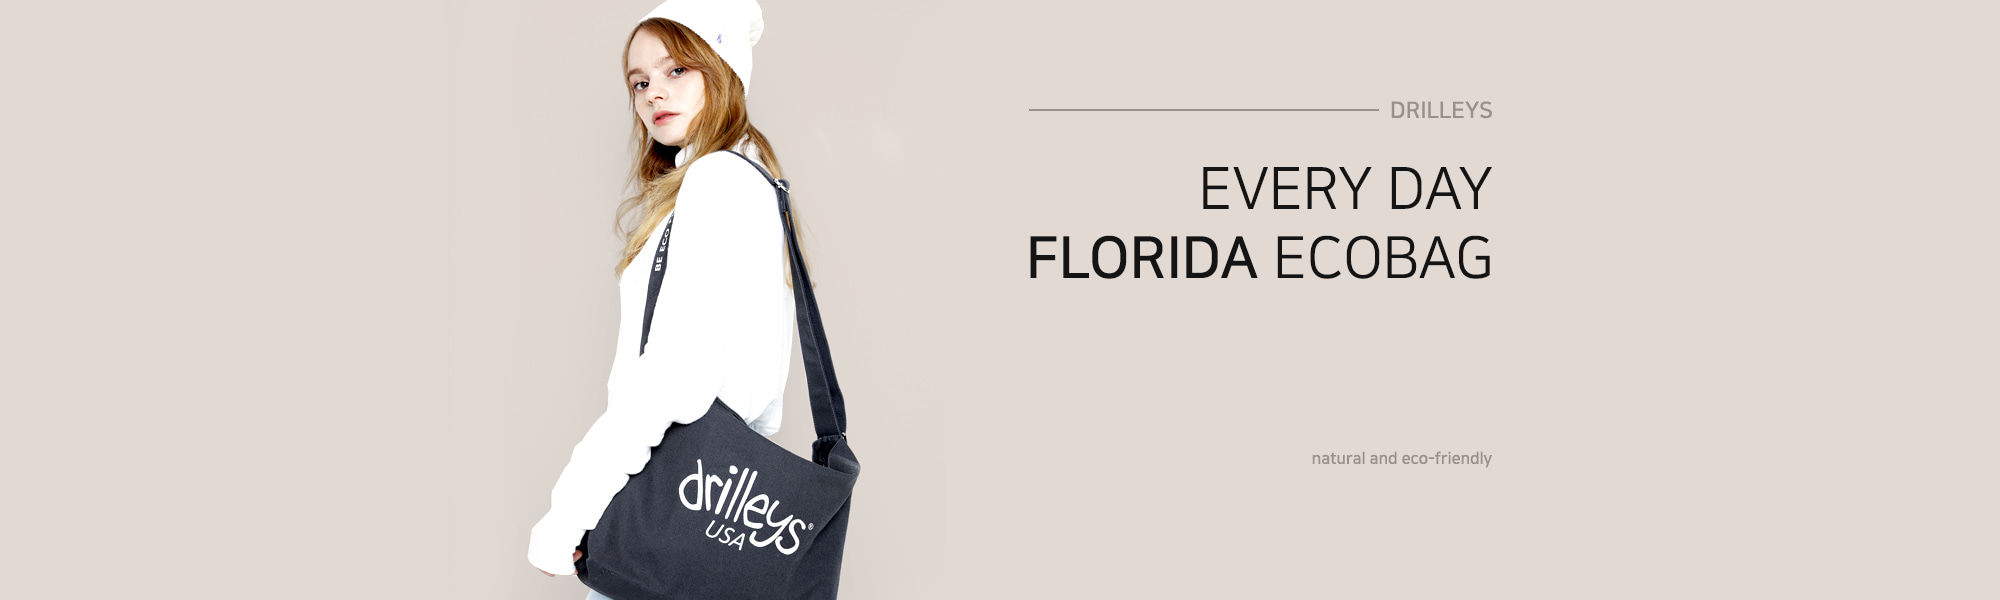 drilleys florida eco bag